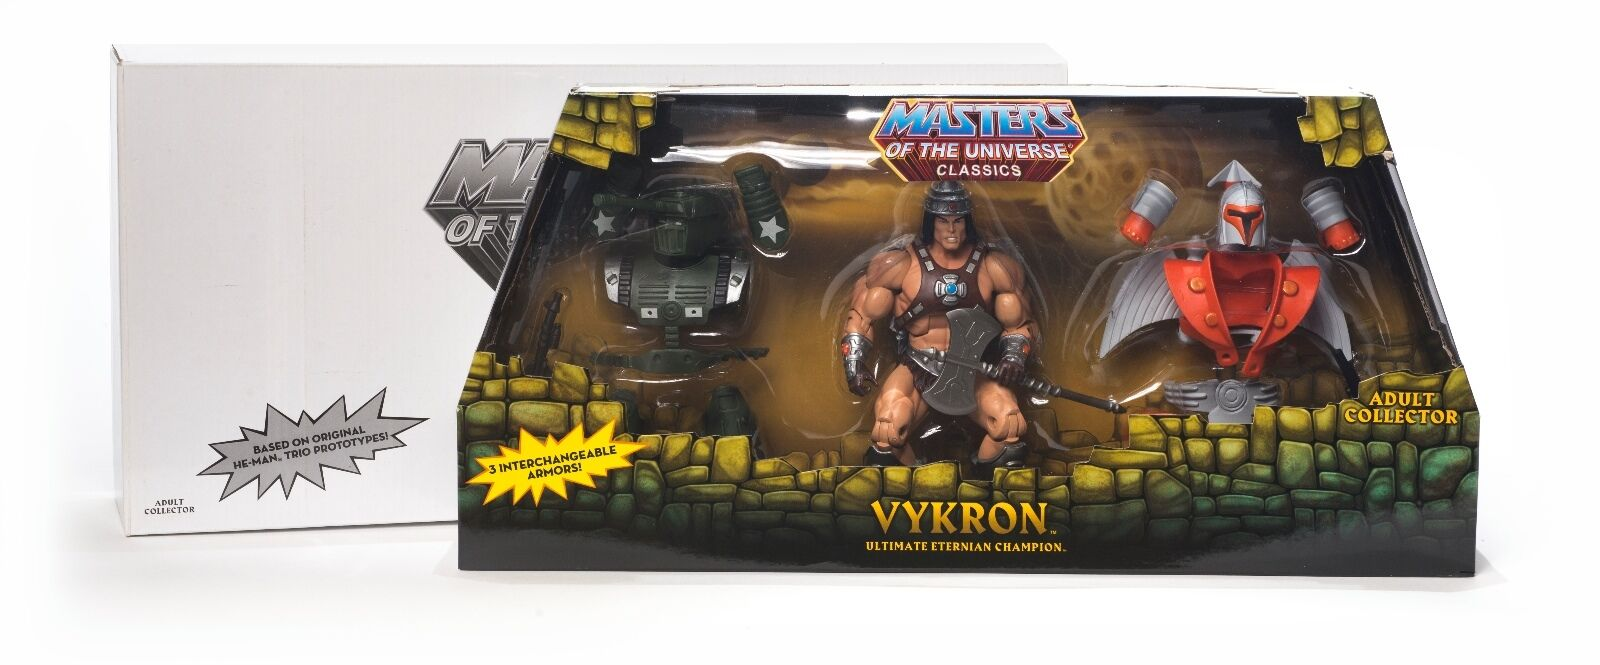 Vykron, SDCC SDCC SDCC 2012 Exclusive Collector Set 4341ec